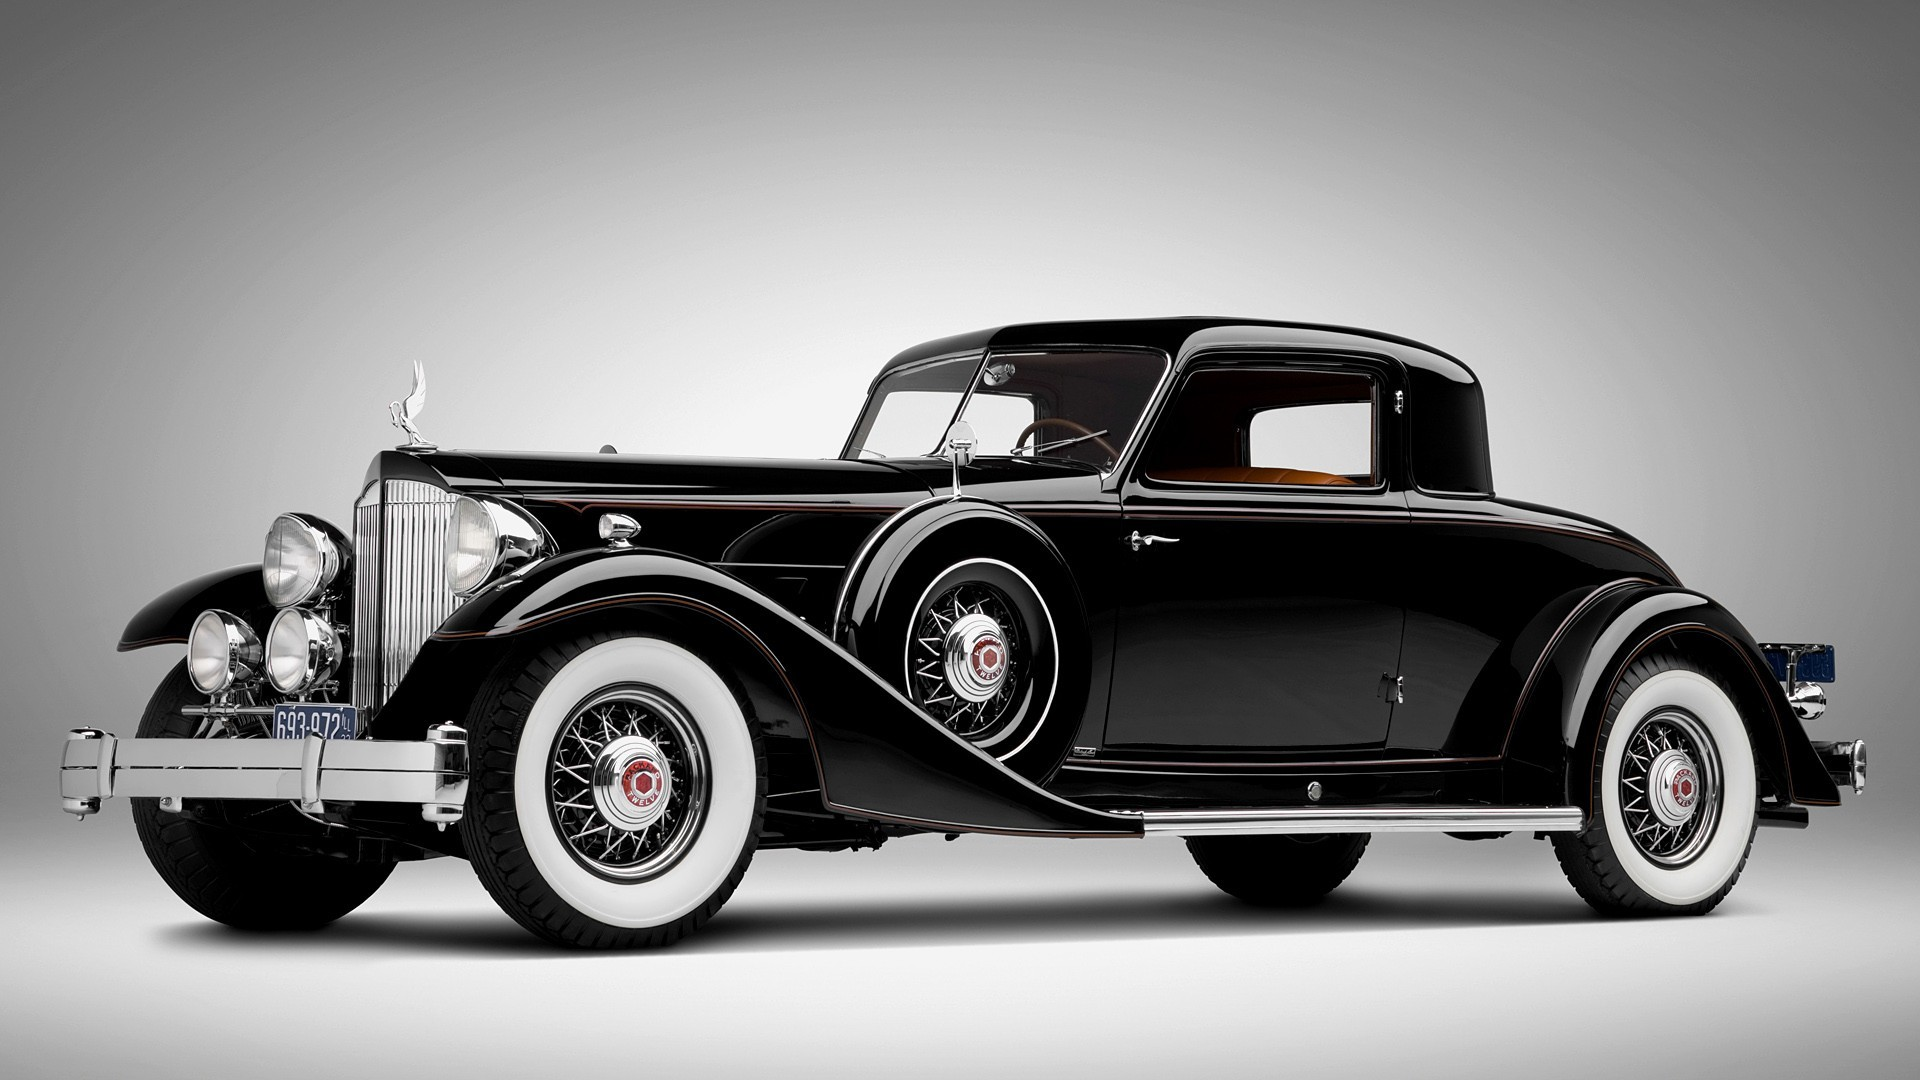 Res: 1920x1080, The-Best-Vintage-Car-Wallpapers-21 (Roundup: The Best